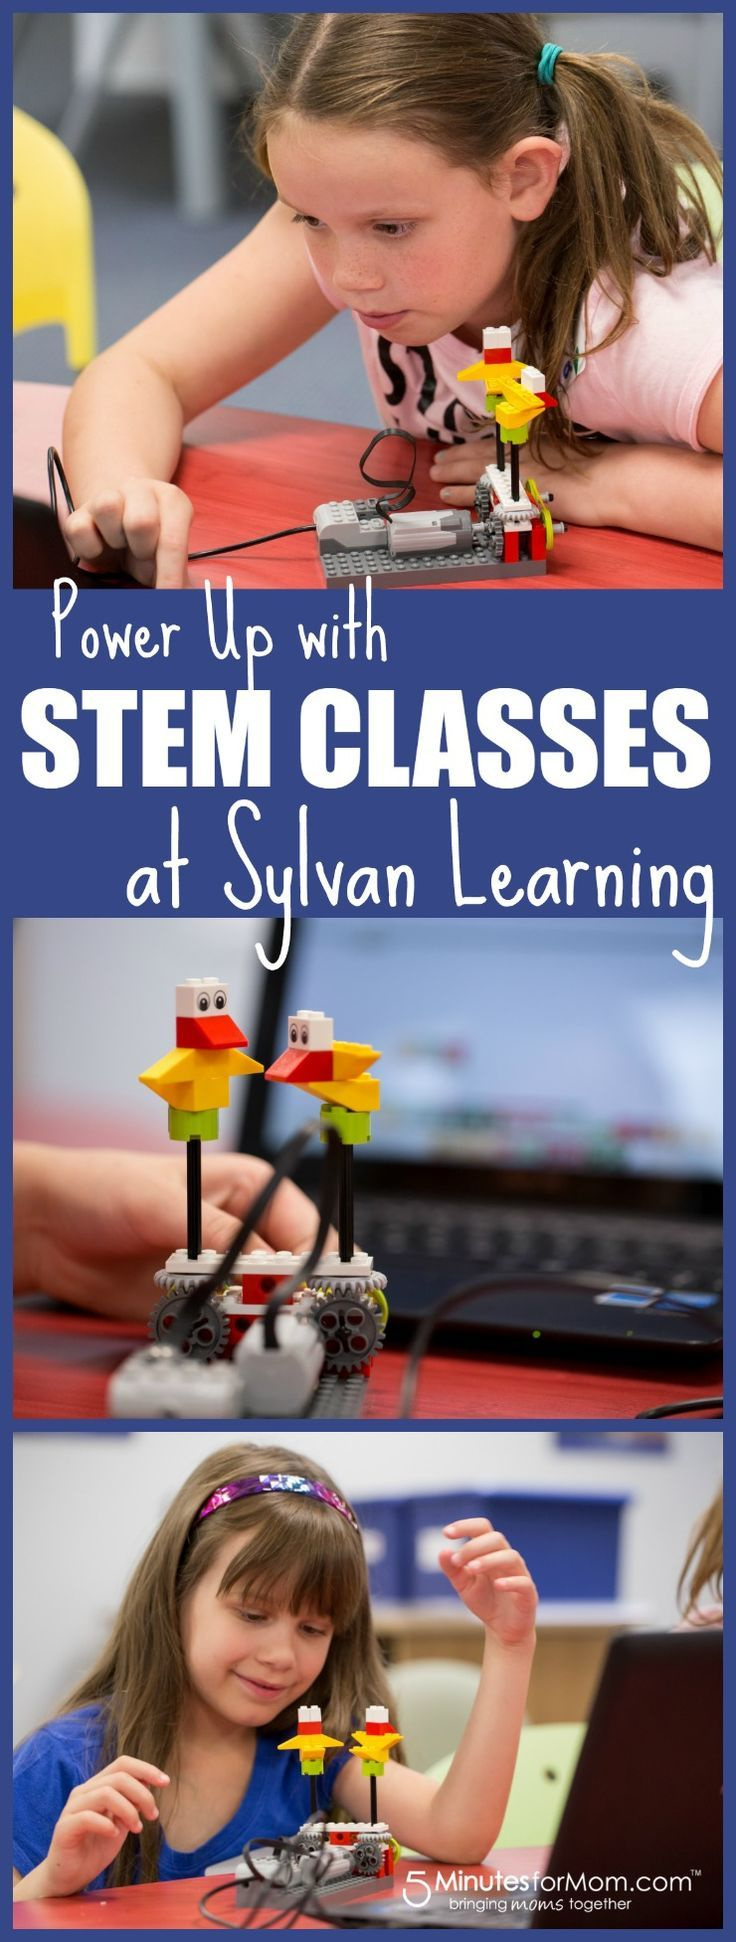 Sylvan EDGE classes teach STEM concepts using fun technology. We tested out the kids Robotics class.